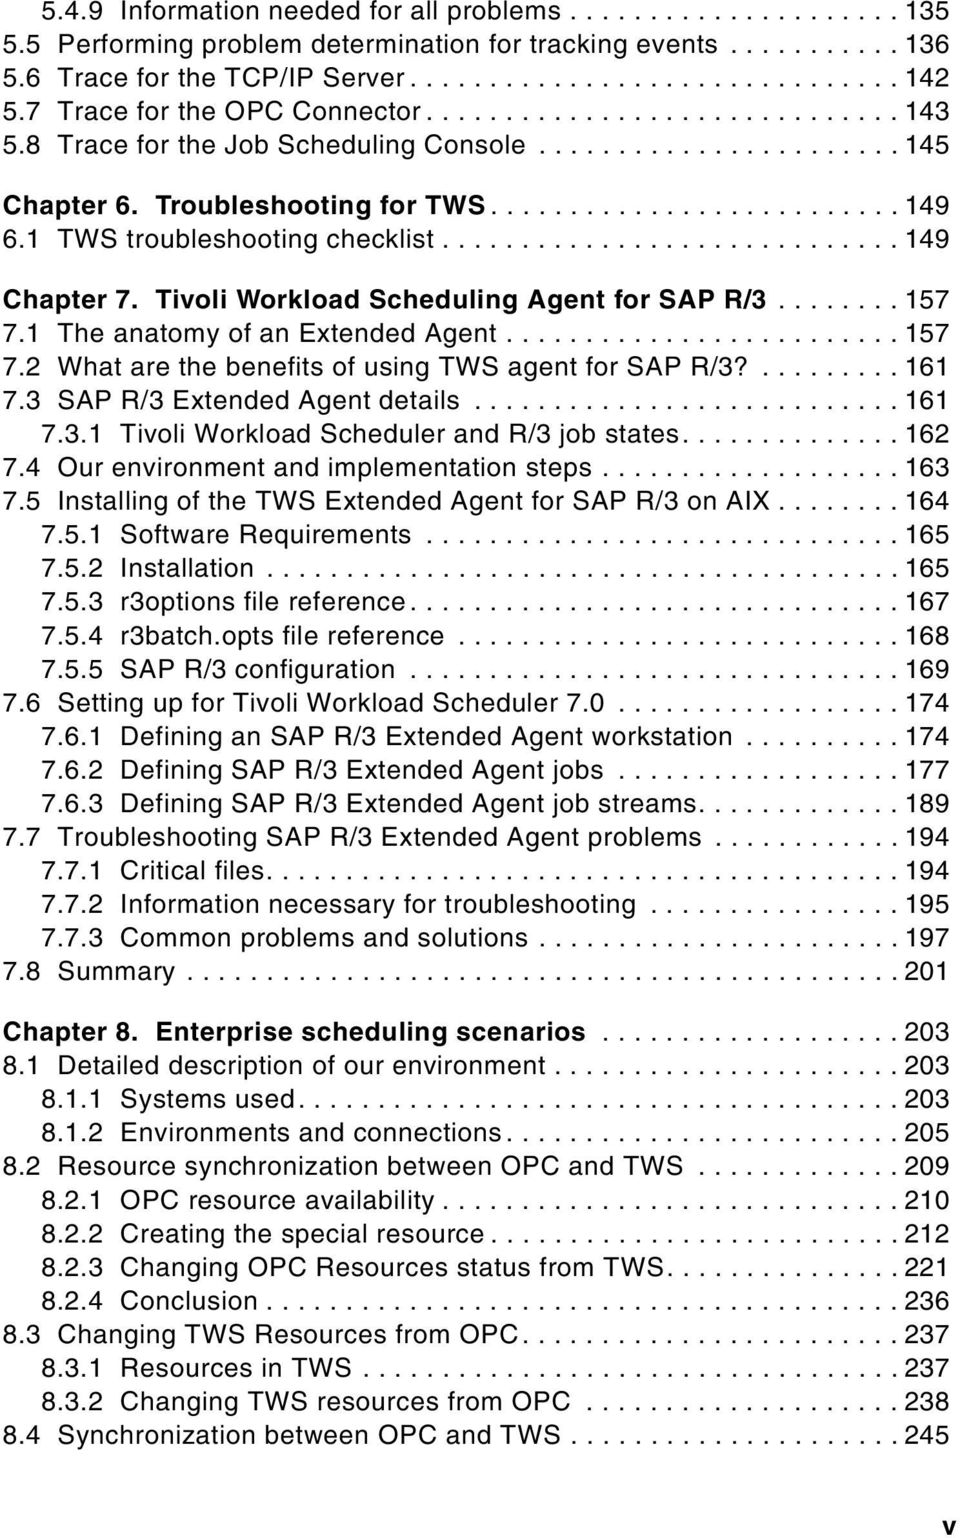 End-to-End Scheduling with OPC and TWS - PDF